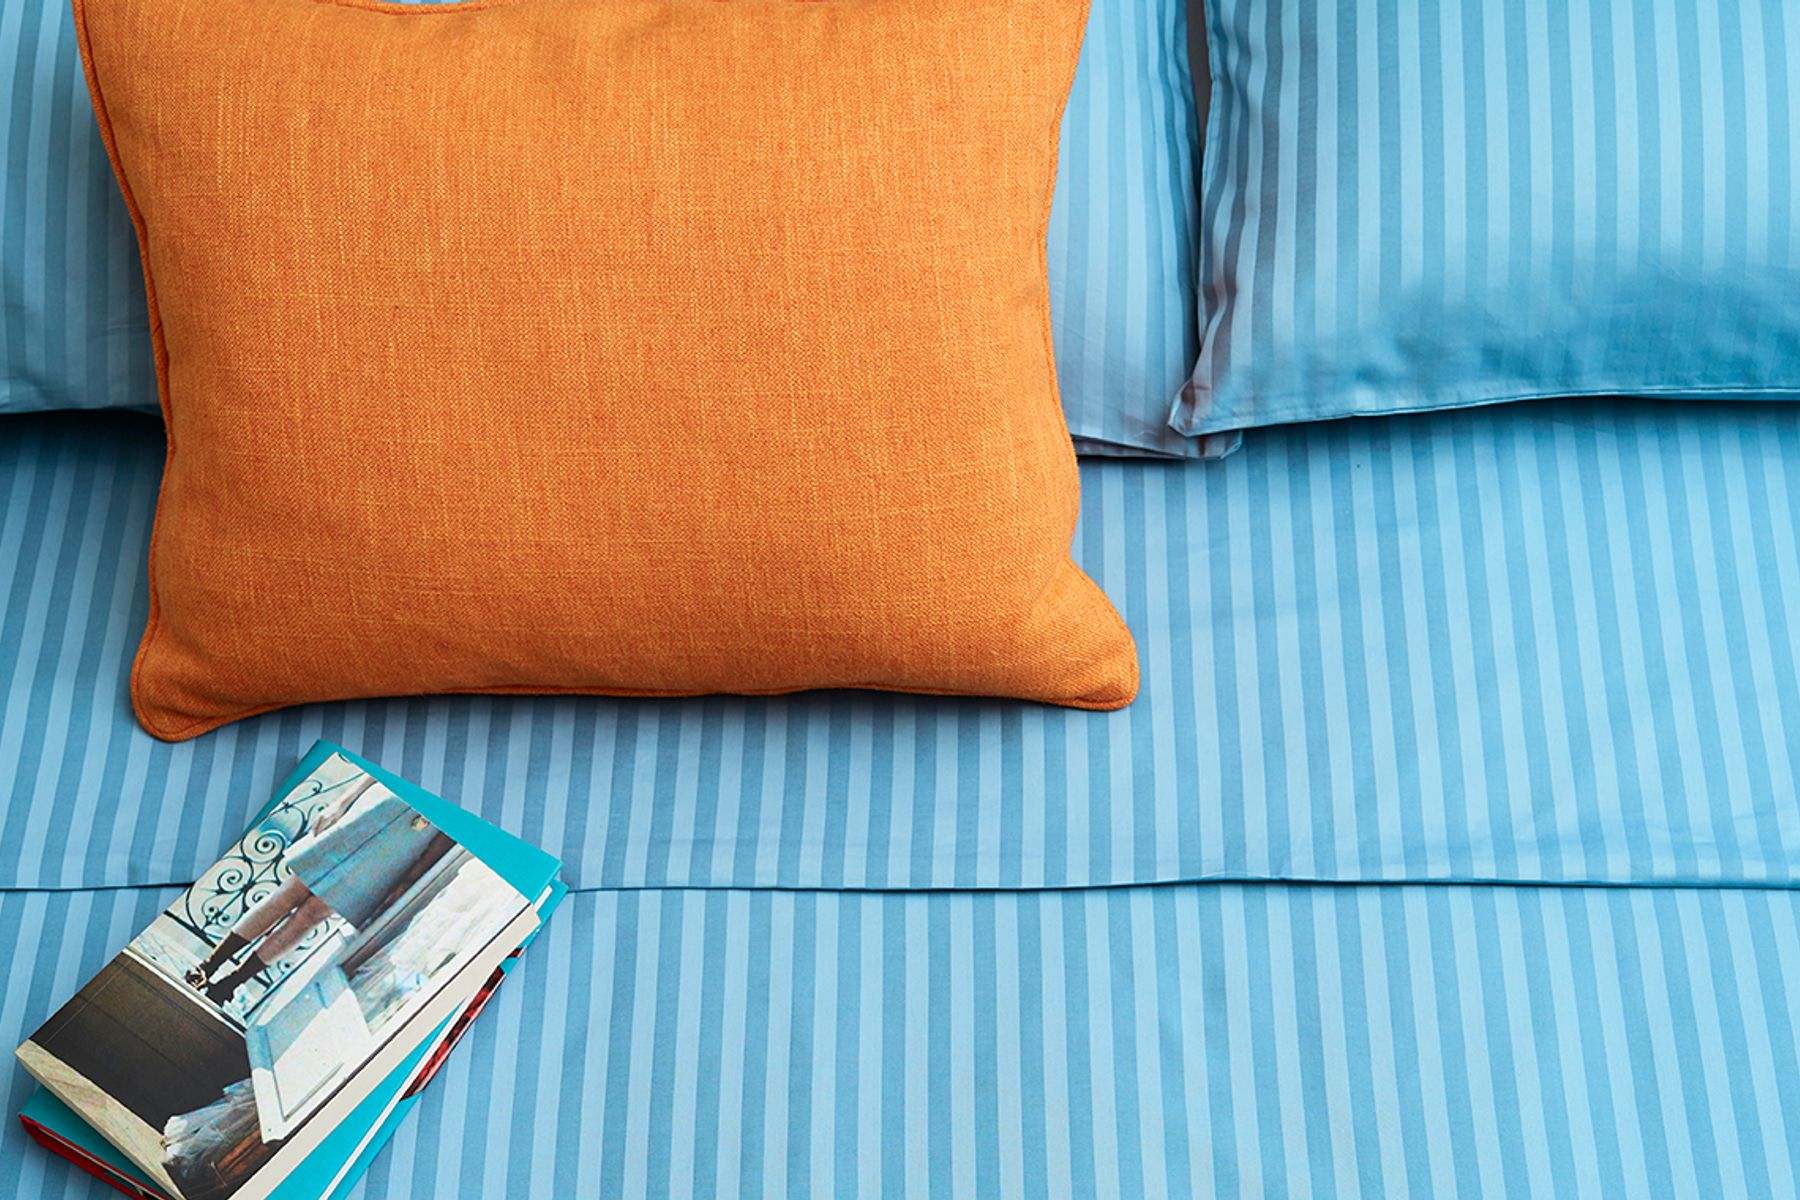 orange pillow on blue bedding and a book